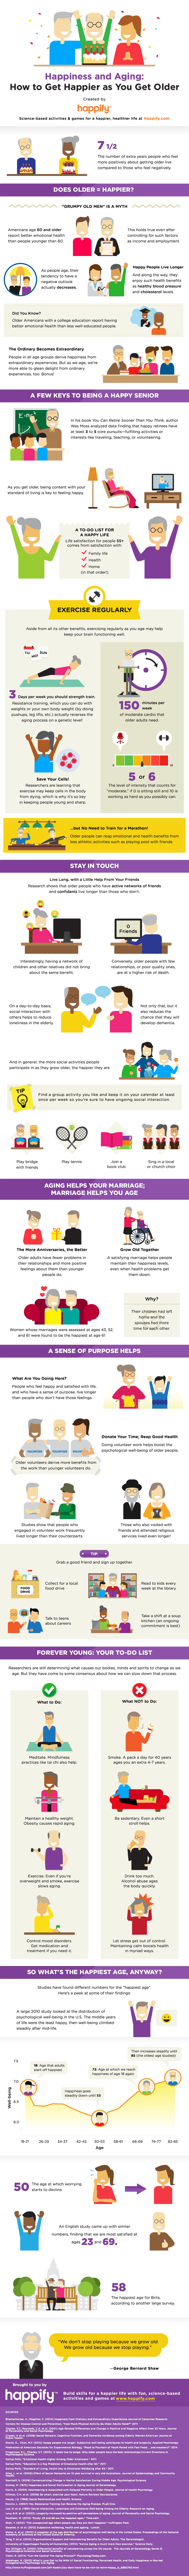 3 Steps To Be A Happy Senior Infographic